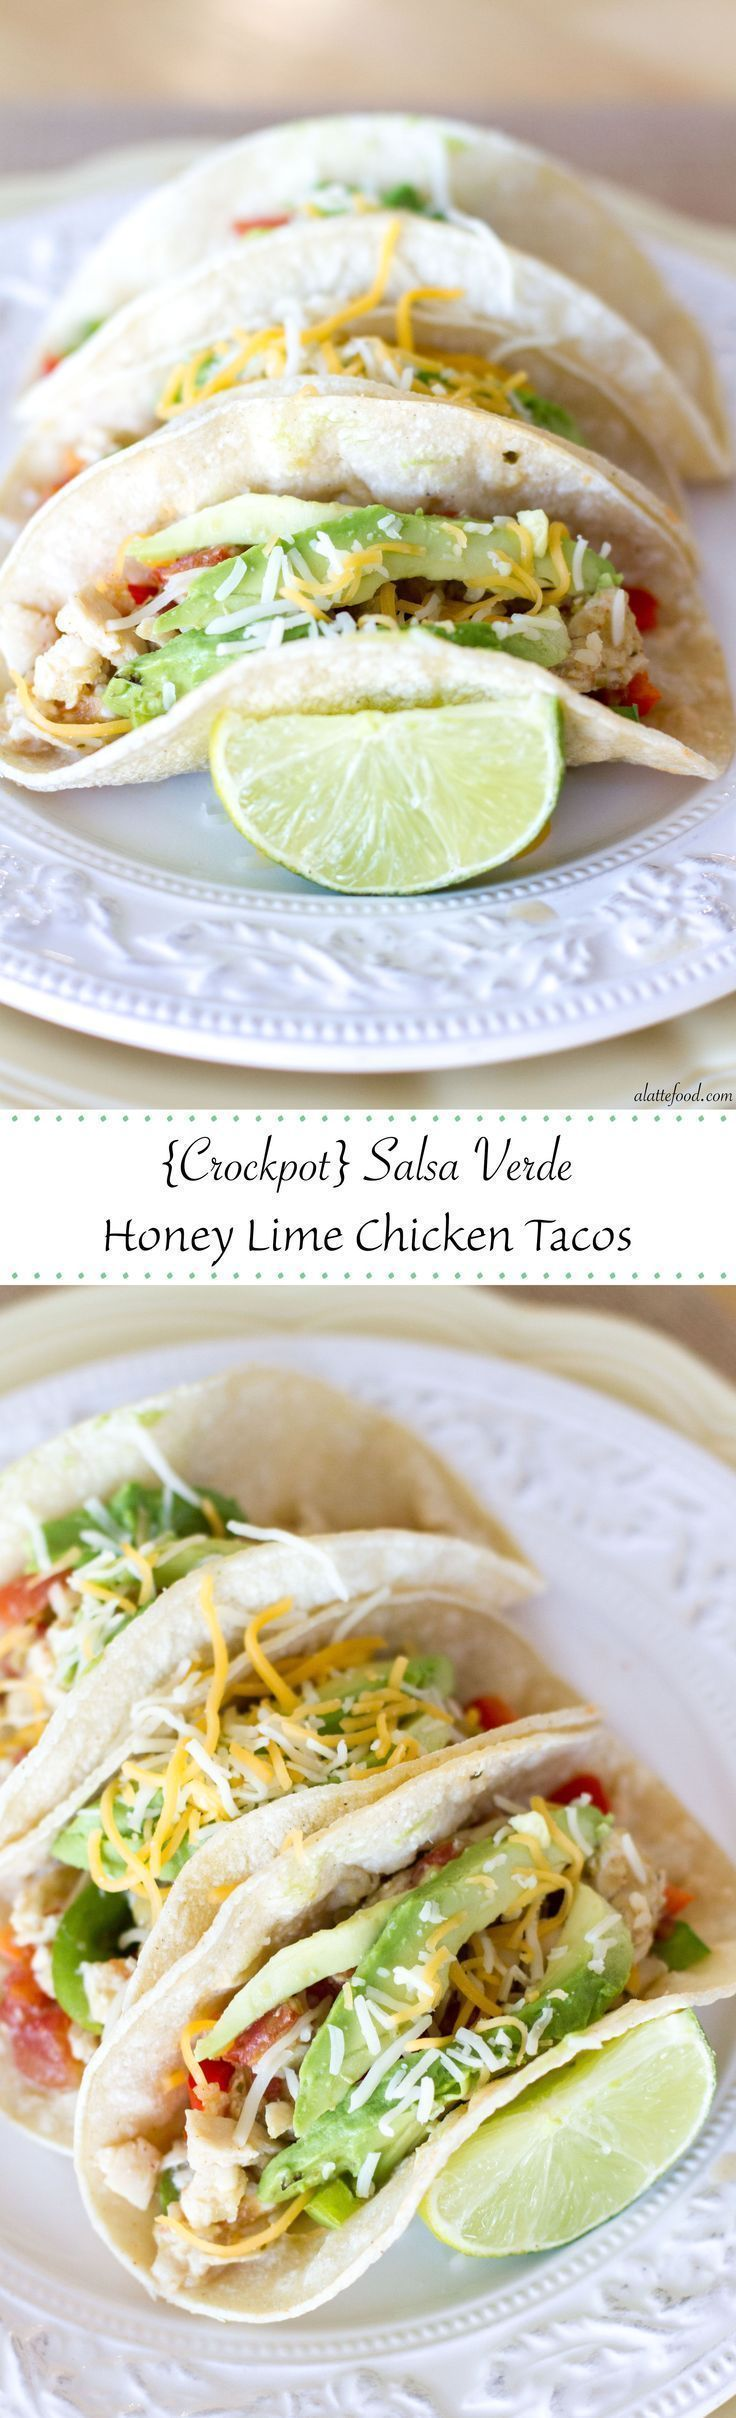 {Crockpot} Salsa Verde Honey Lime Chicken Tacos | An easy dinner recipe that tastes great! #honeylimechicken {Crockpot} Salsa Verde Honey Lime Chicken Tacos | An easy dinner recipe that tastes great! #honeylimechicken